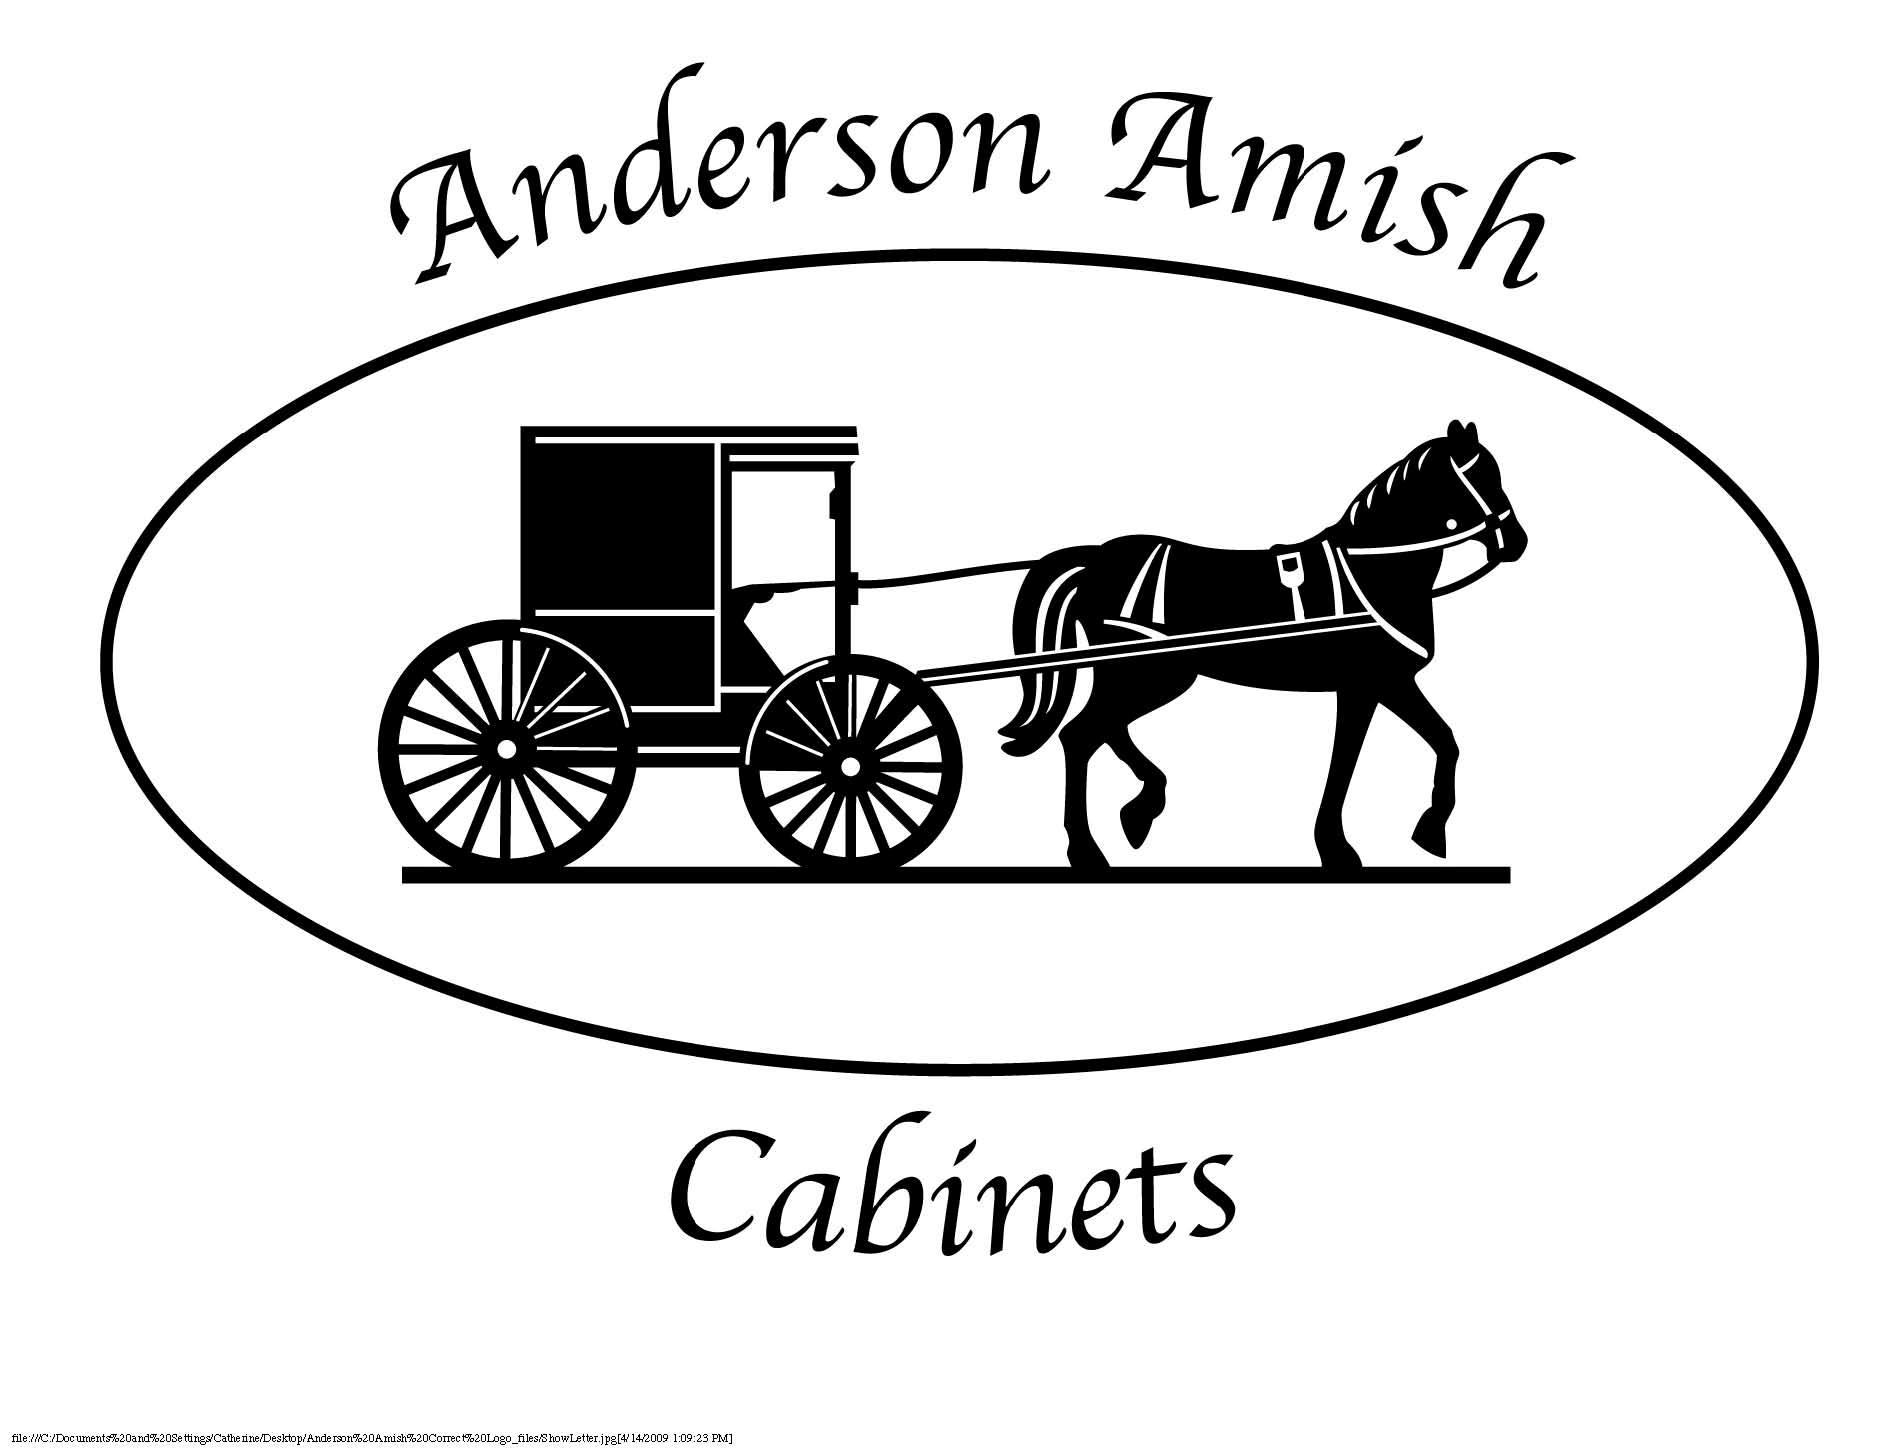 Anderson Amish Cabinets